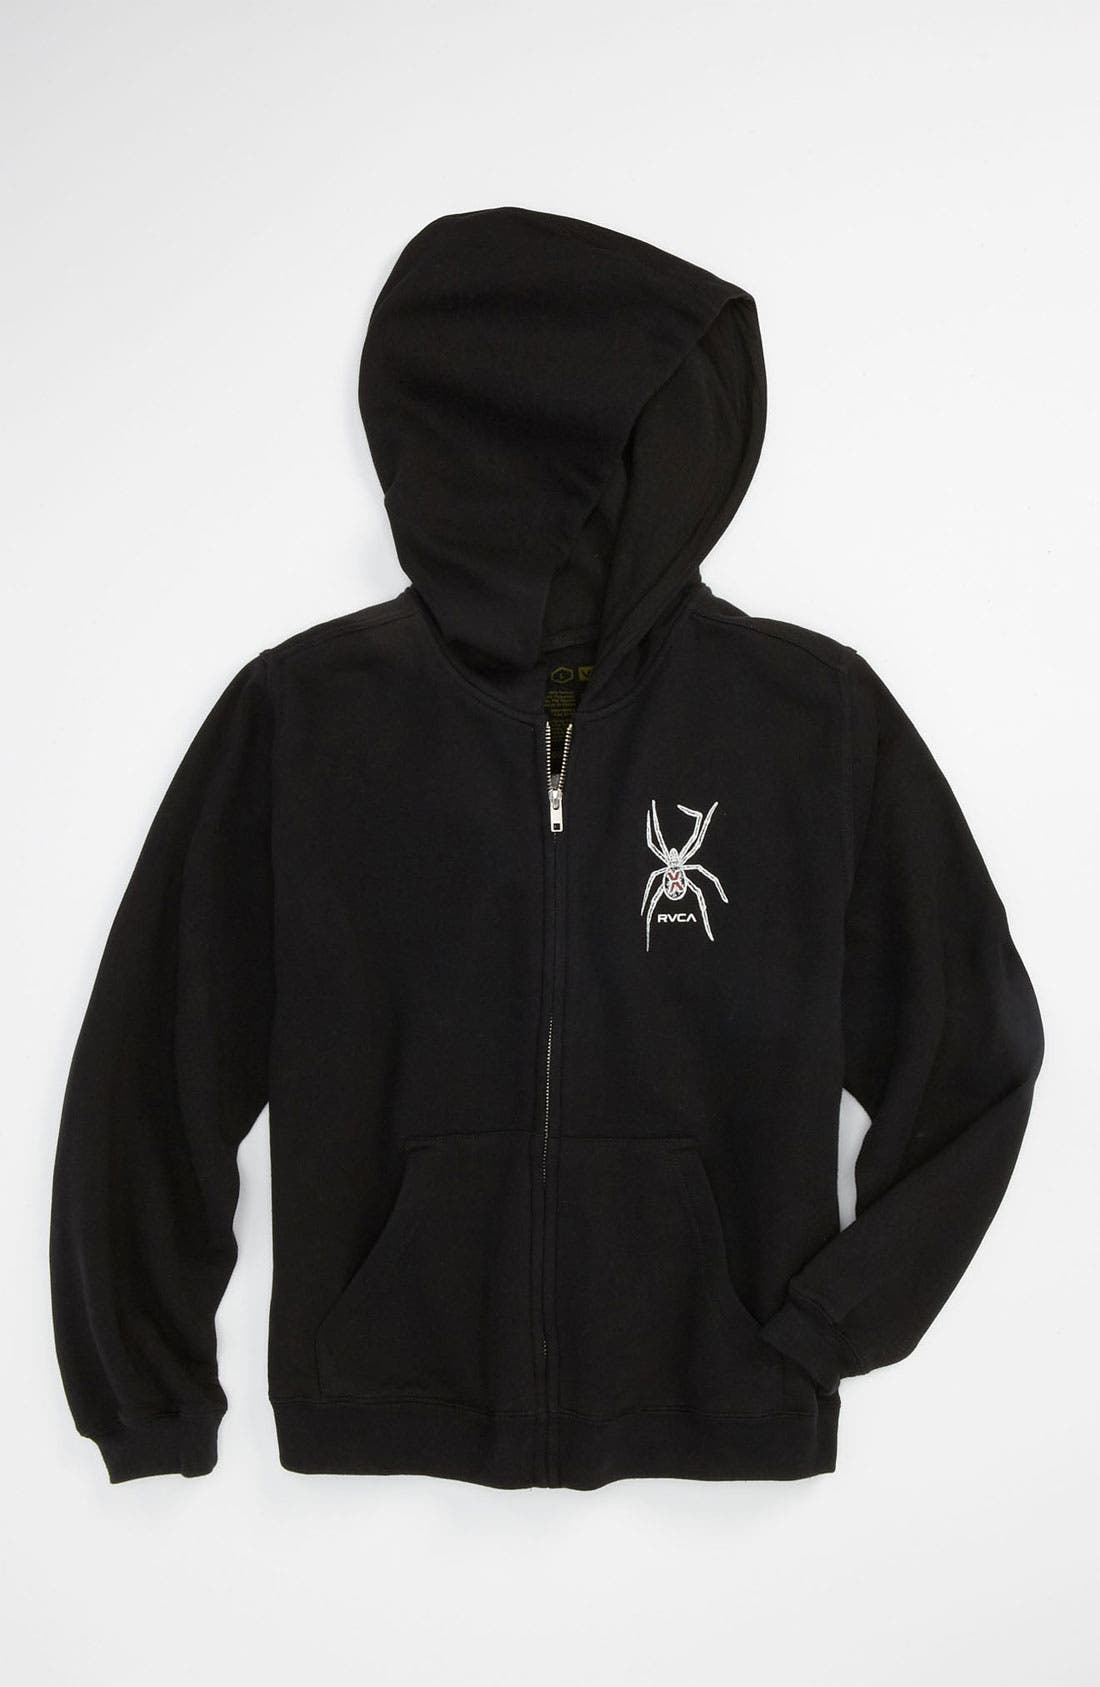 Alternate Image 1 Selected - RVCA 'Web' Zip Hoodie (Big Boys)